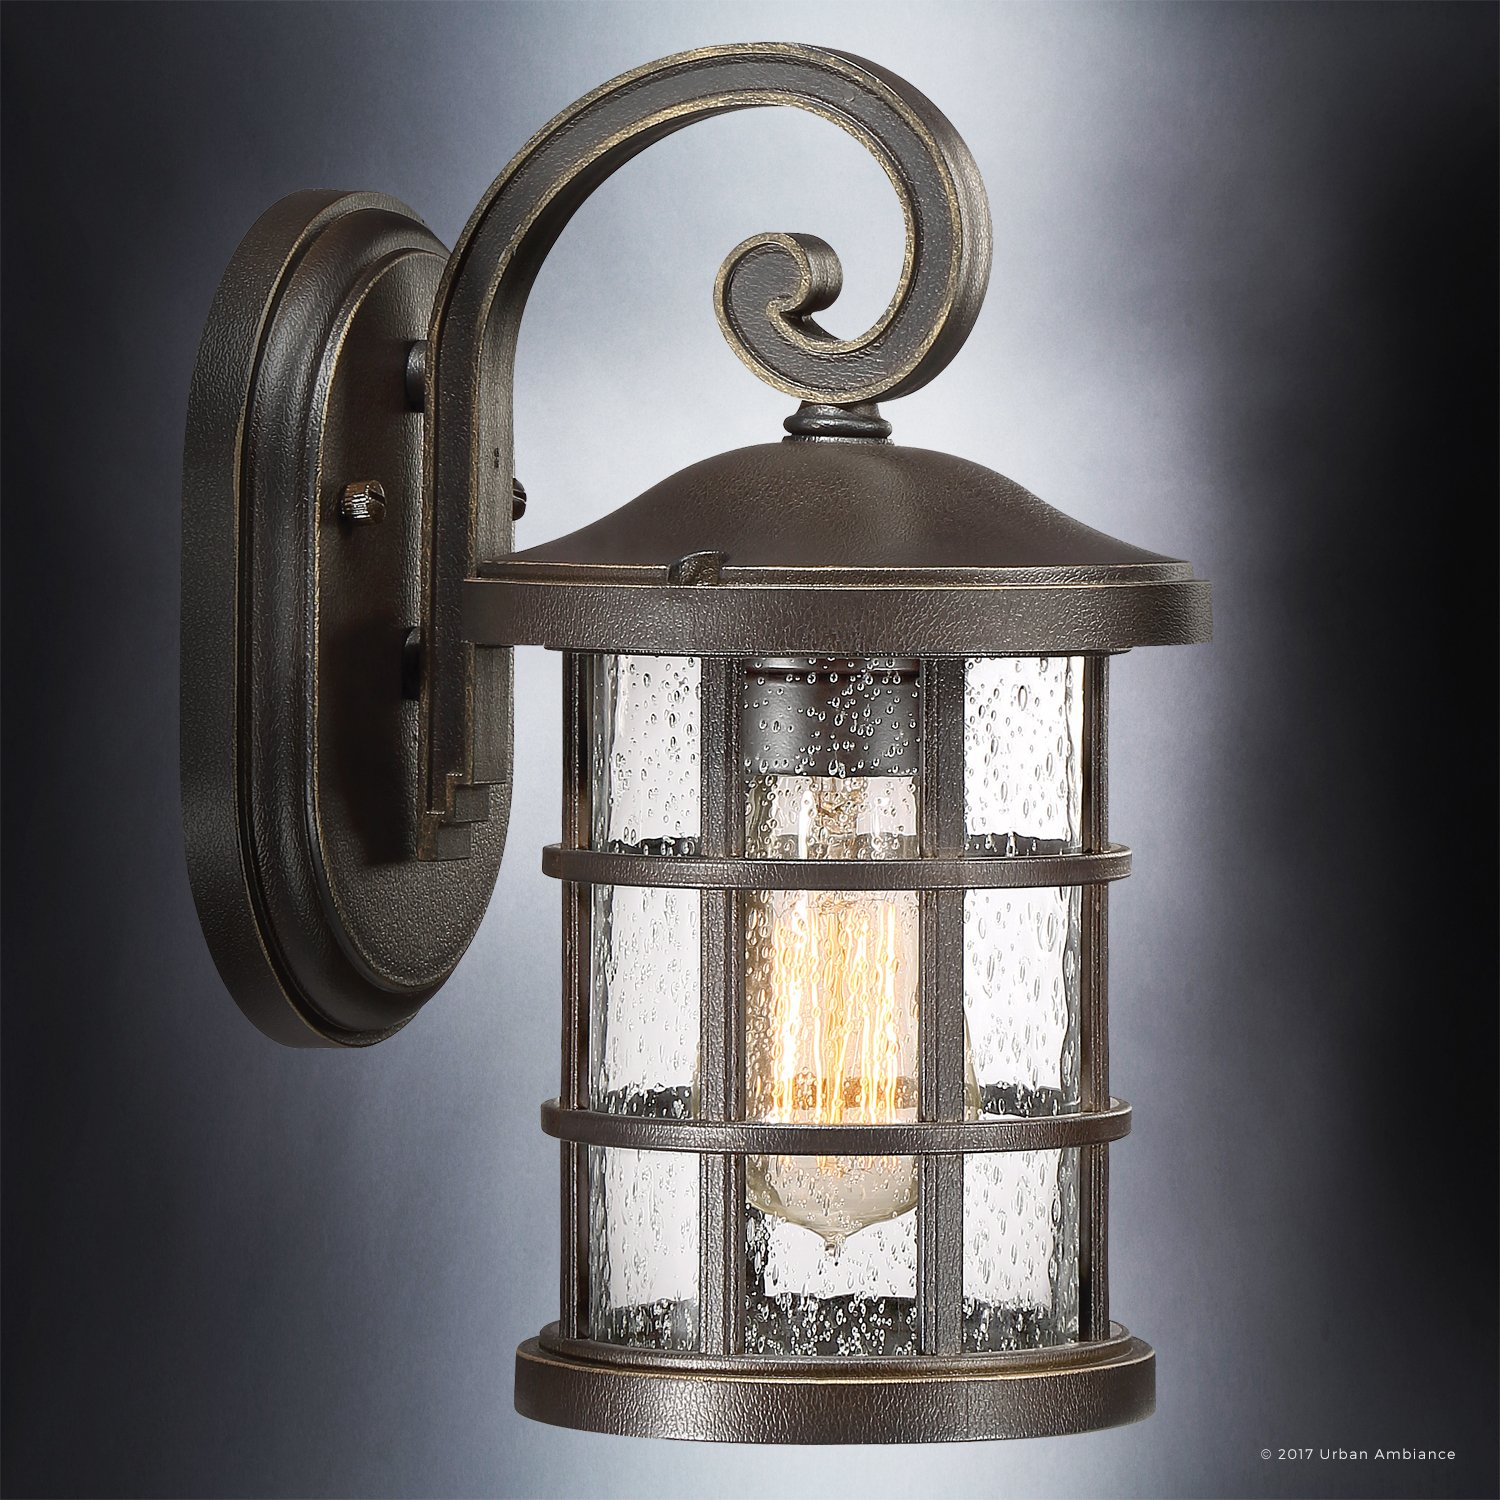 Luxury Craftsman Outdoor Wall Light, Small Size: 11'' H x 6'' W, with Tudor Style Elements, Wrought Iron Design, Oil Rubbed Parisian Bronze Finish and Seeded Glass, UQL1041 by Urban Ambiance by Urban Ambiance (Image #3)